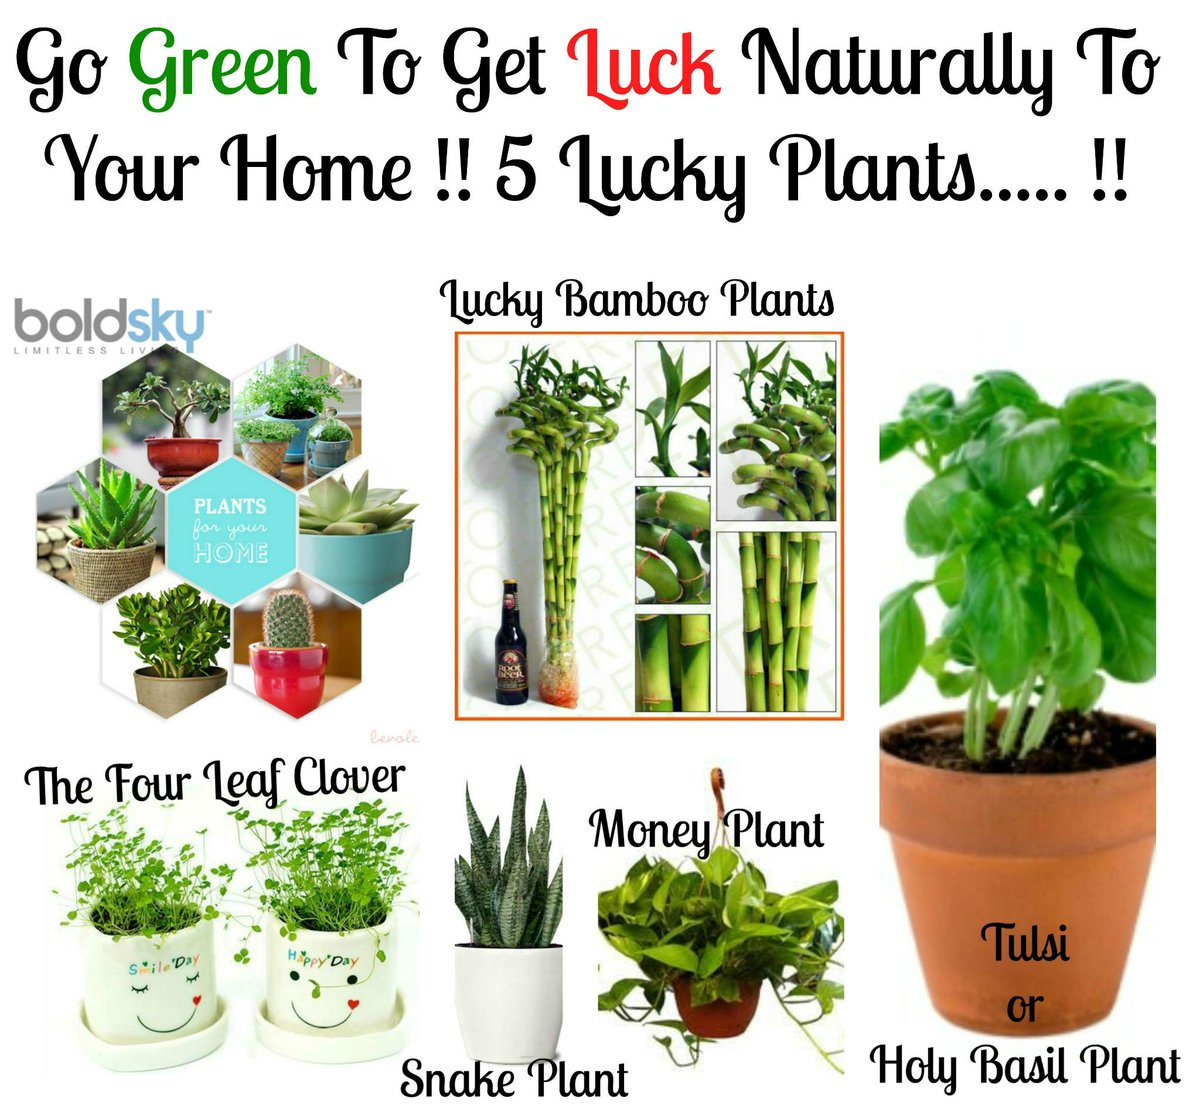 boldsky on twitter to know which good luck plants to keep in your